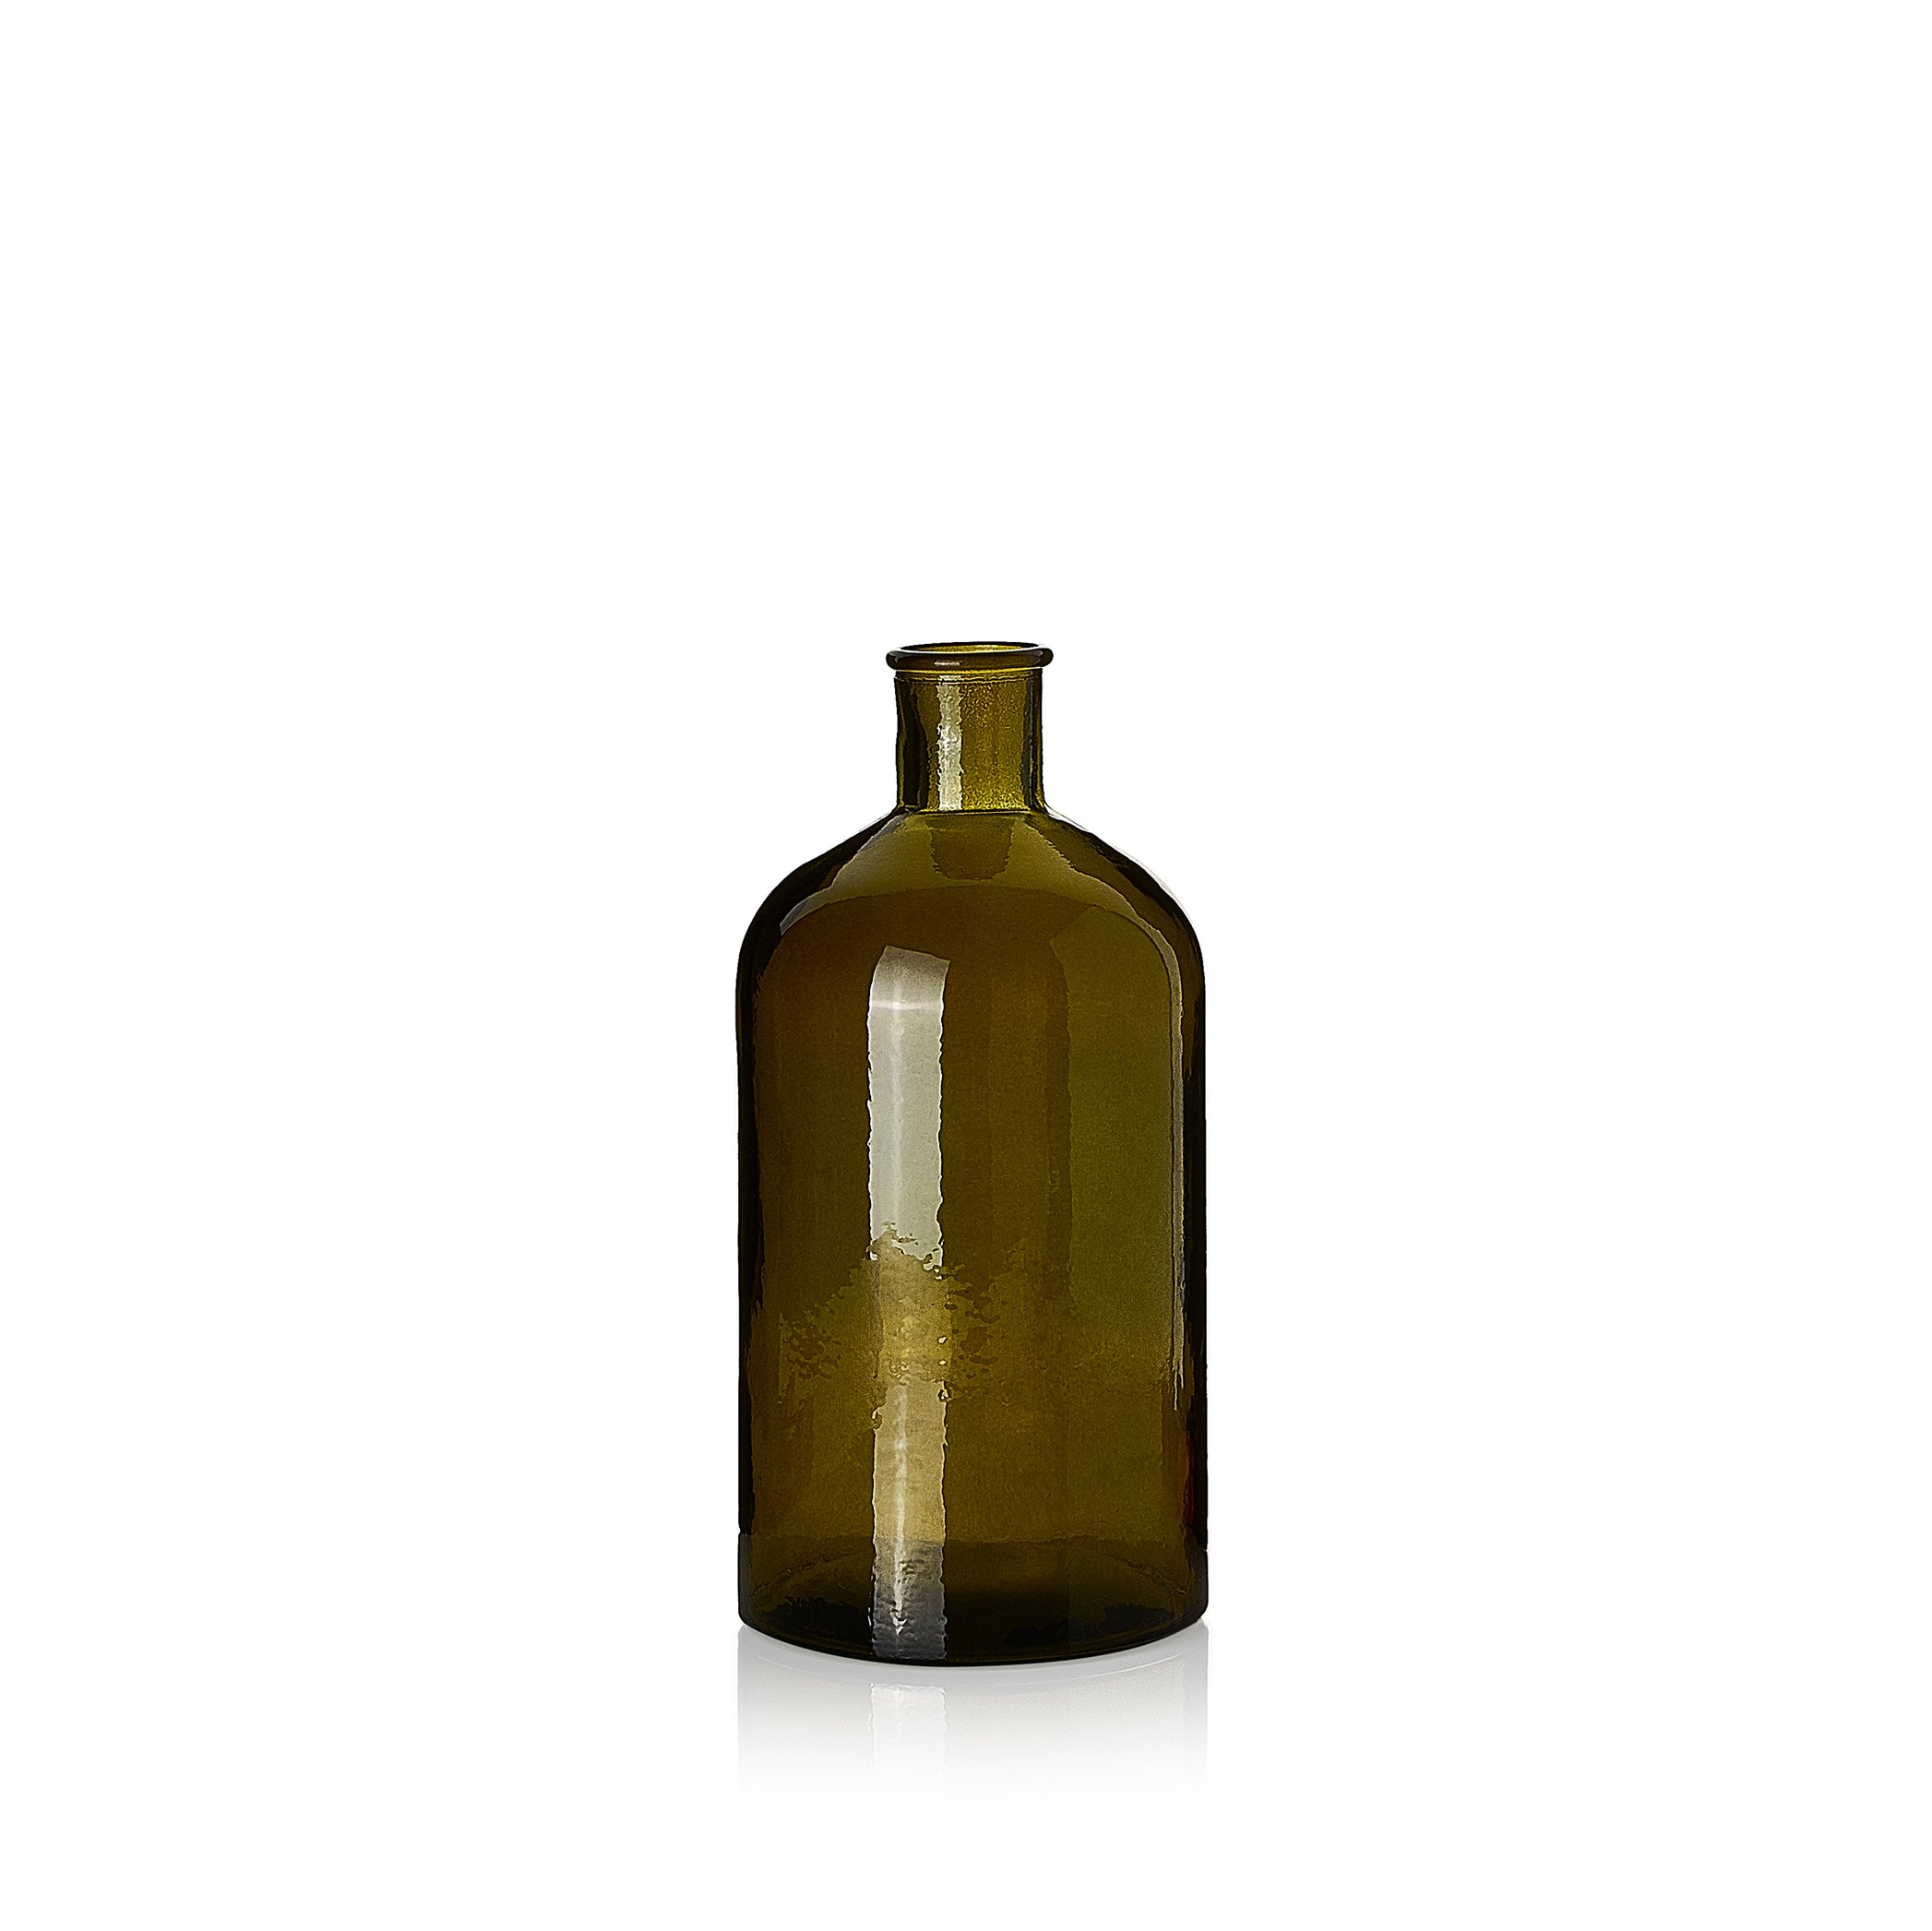 Recycled Glass Bottle in Avocado Green, 28cm